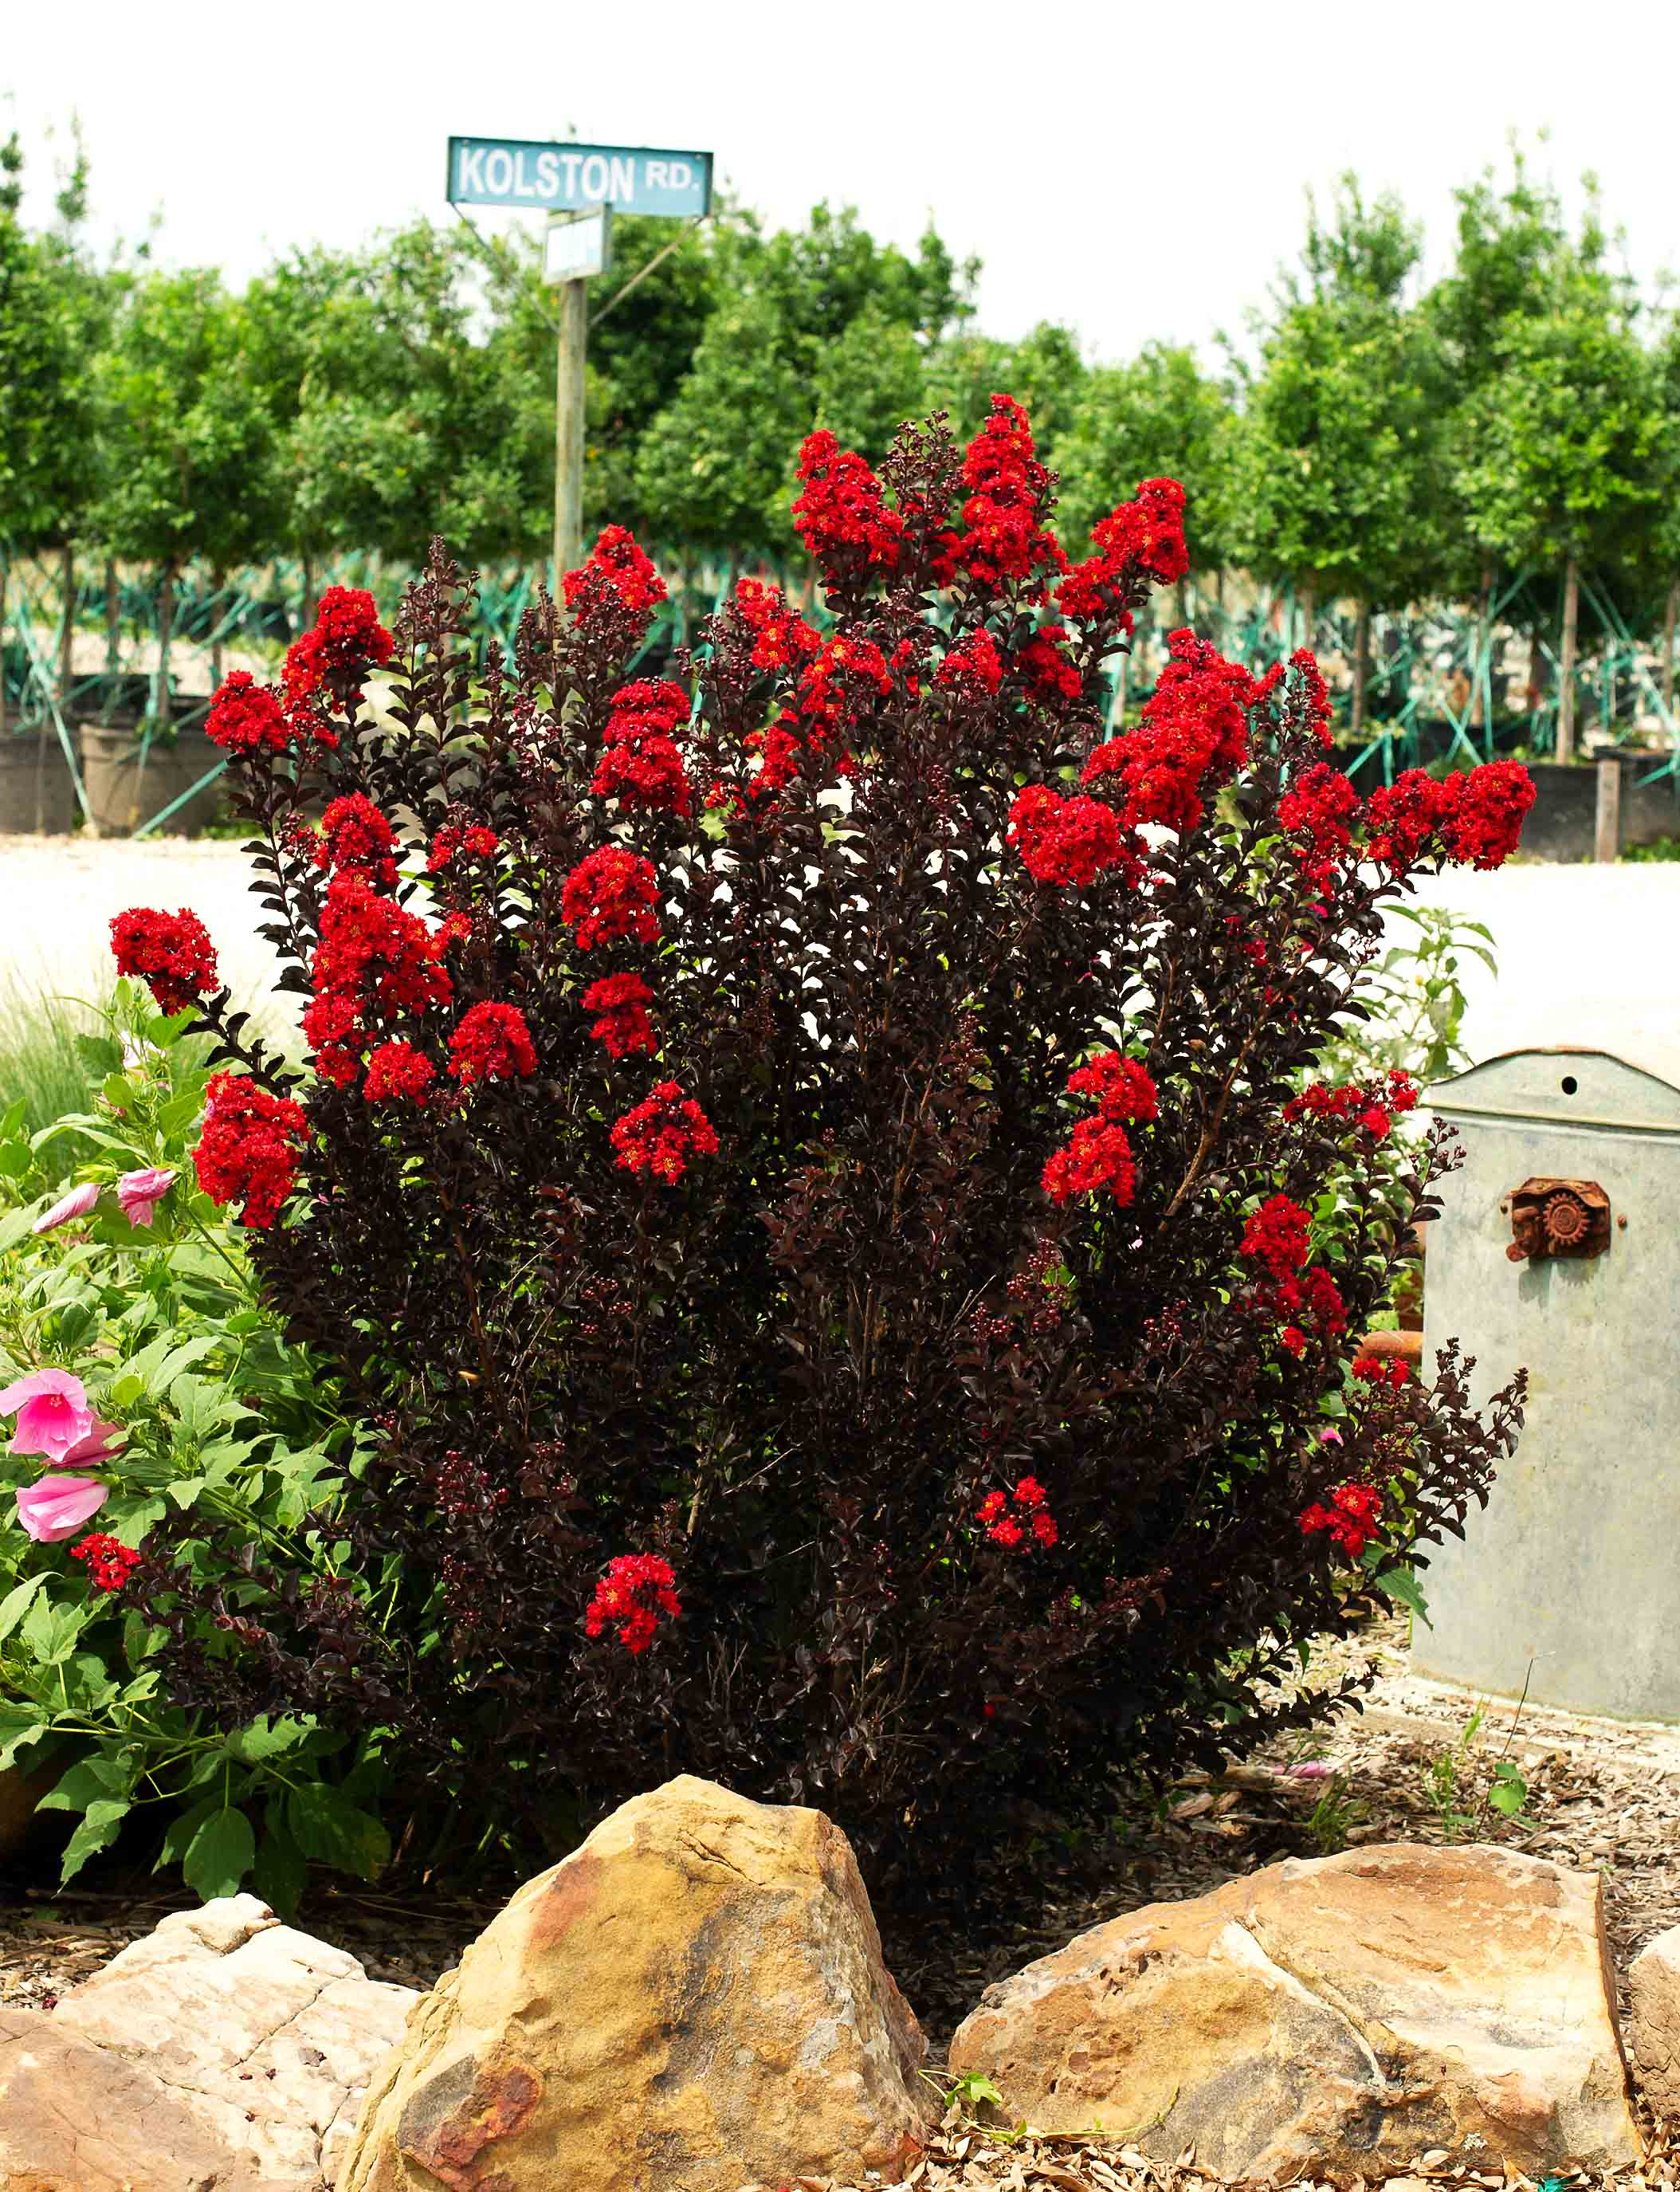 Maturing Black Diamond Crape Myrtle blooming in the Summer. Photographed 3 years after planting at Treeland Nursery.